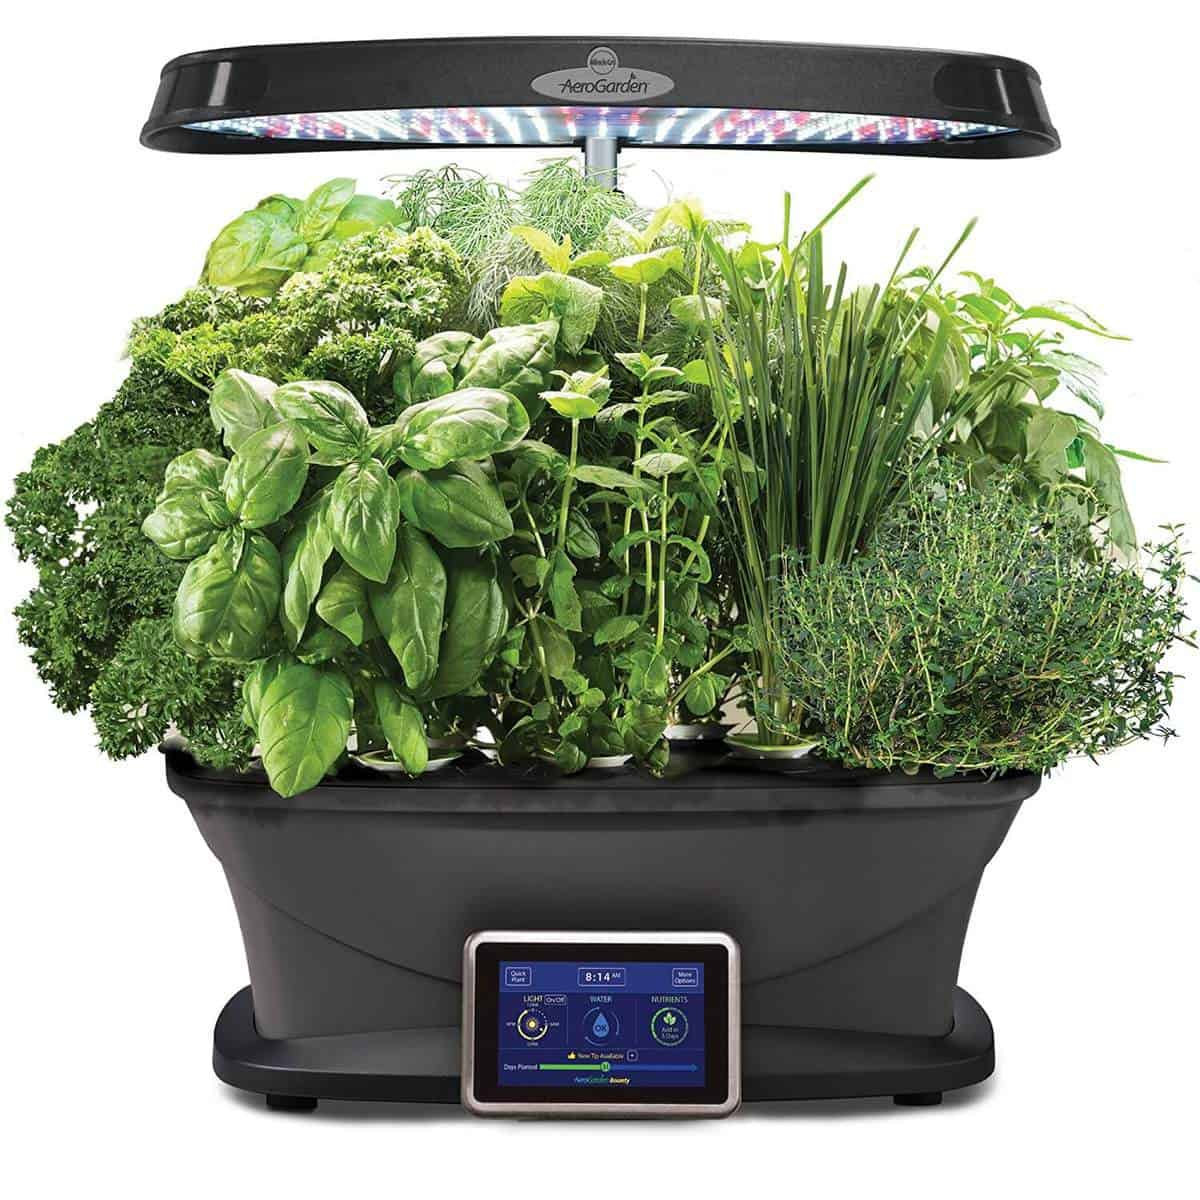 Kitchen Garden Kit: Best Hydroponic Kits For Home Gardeners (2018 Update